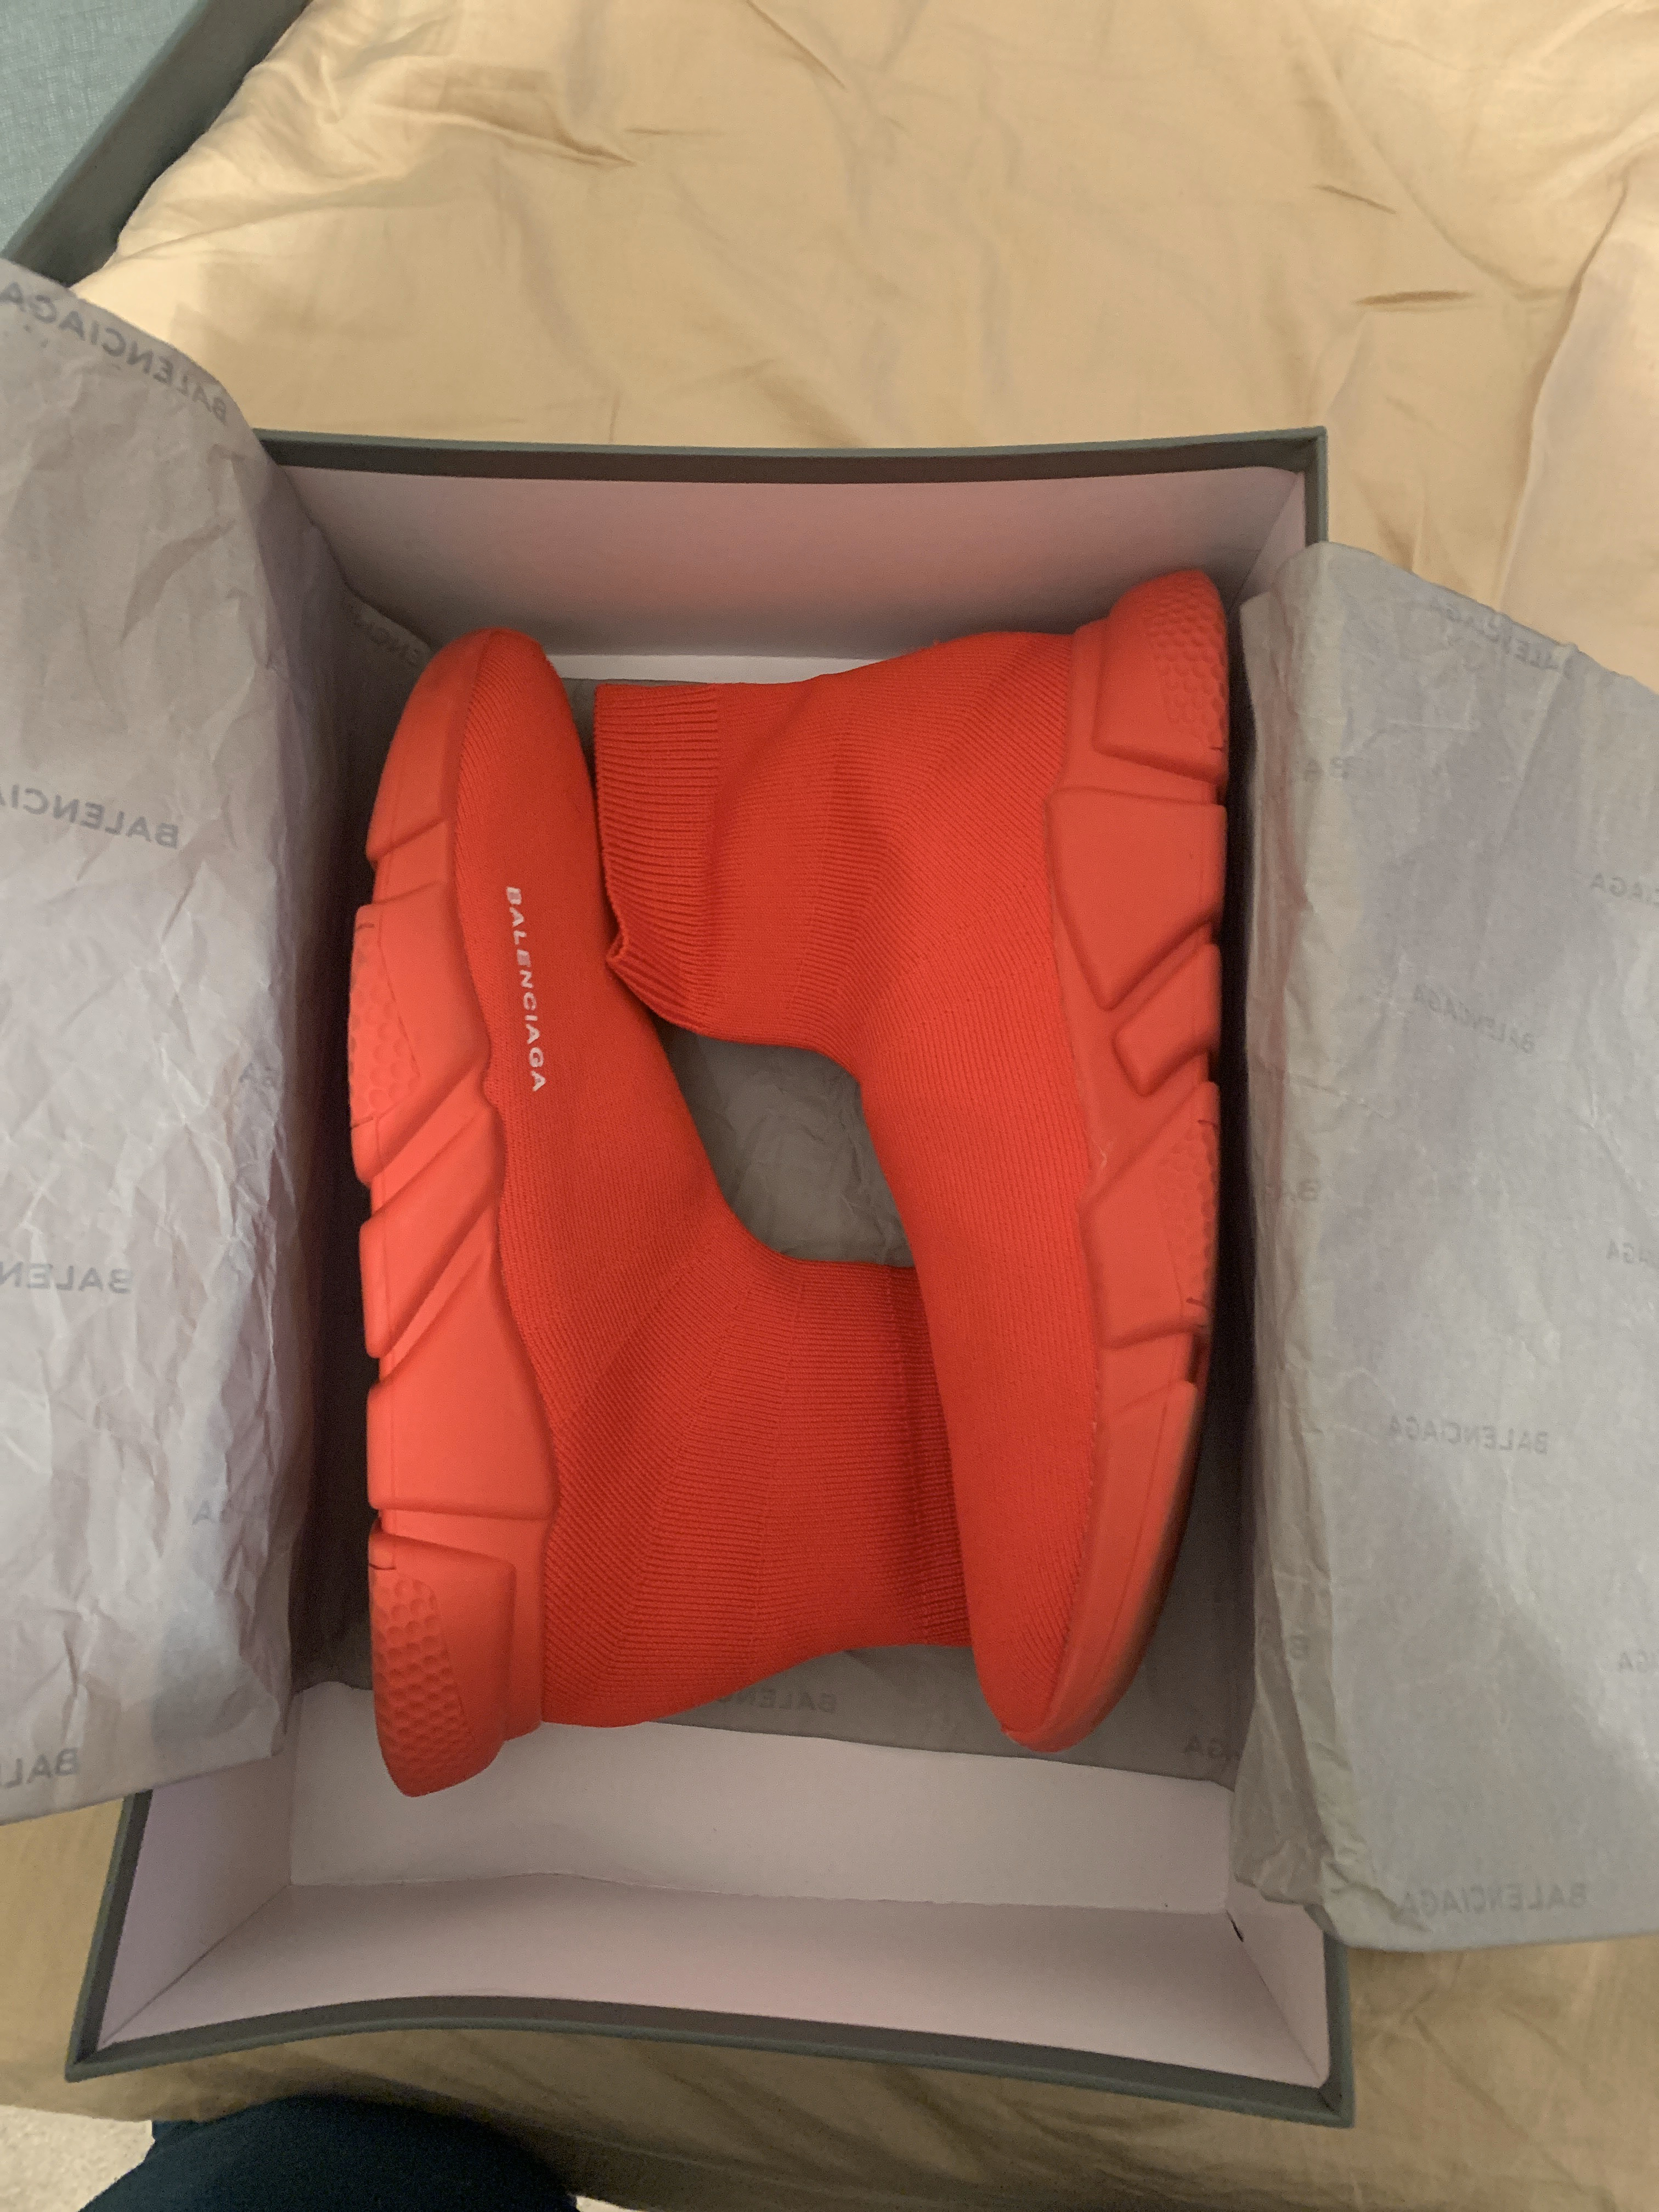 Other - $750 - Size 46